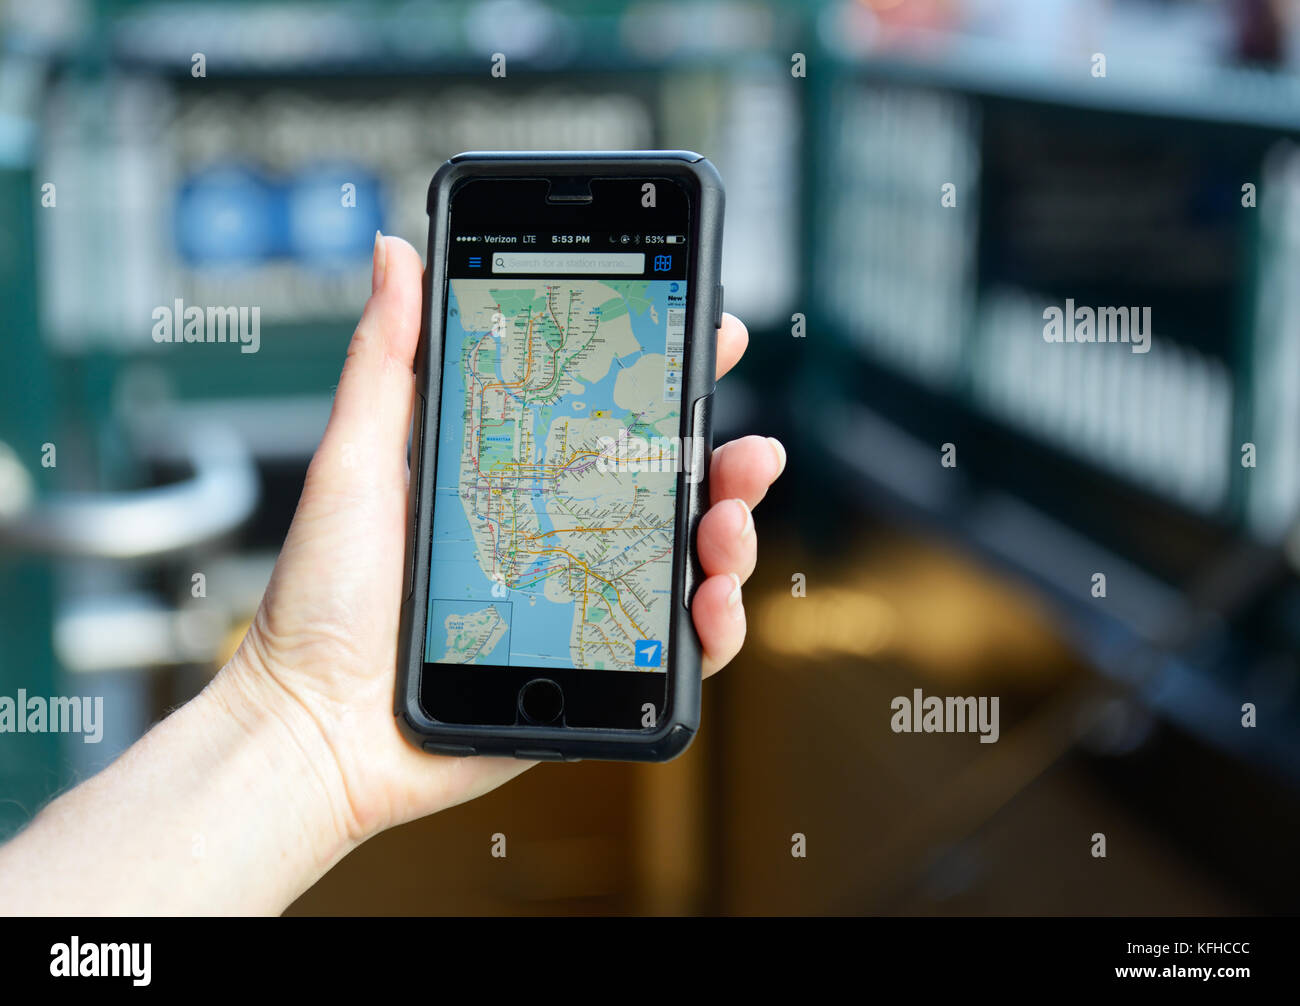 Subway Map App Application On Mobile Phone New York City Stock